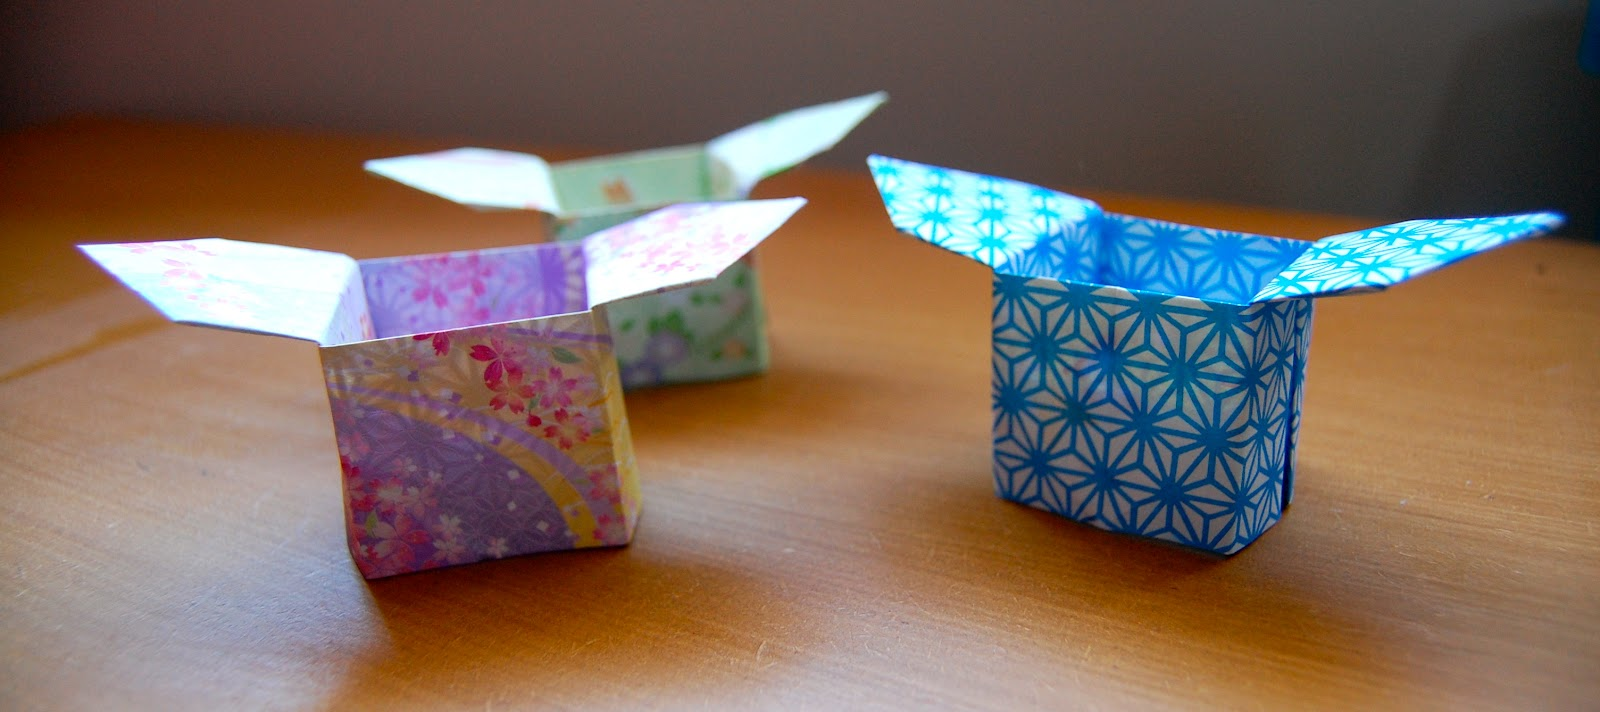 How To Make An Origami Box With Flaps